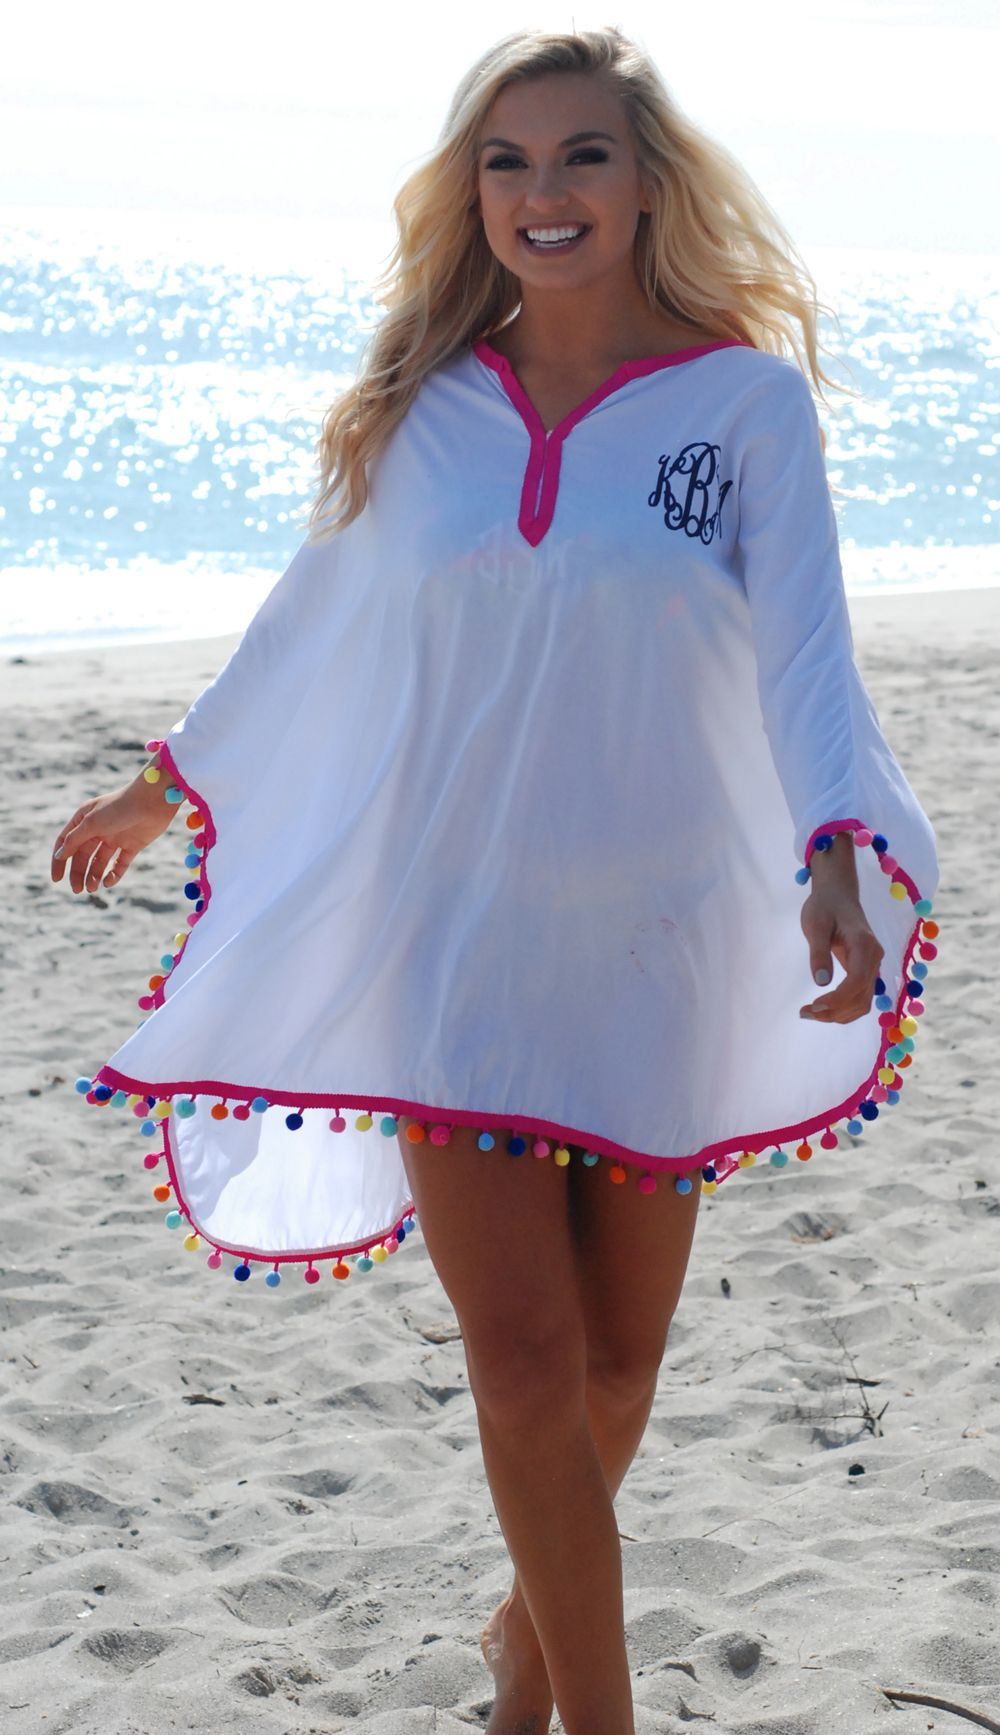 795afd0bf5 Hit the beach in this adorableee NEW Monogrammed Pom Pom Cover Up ...